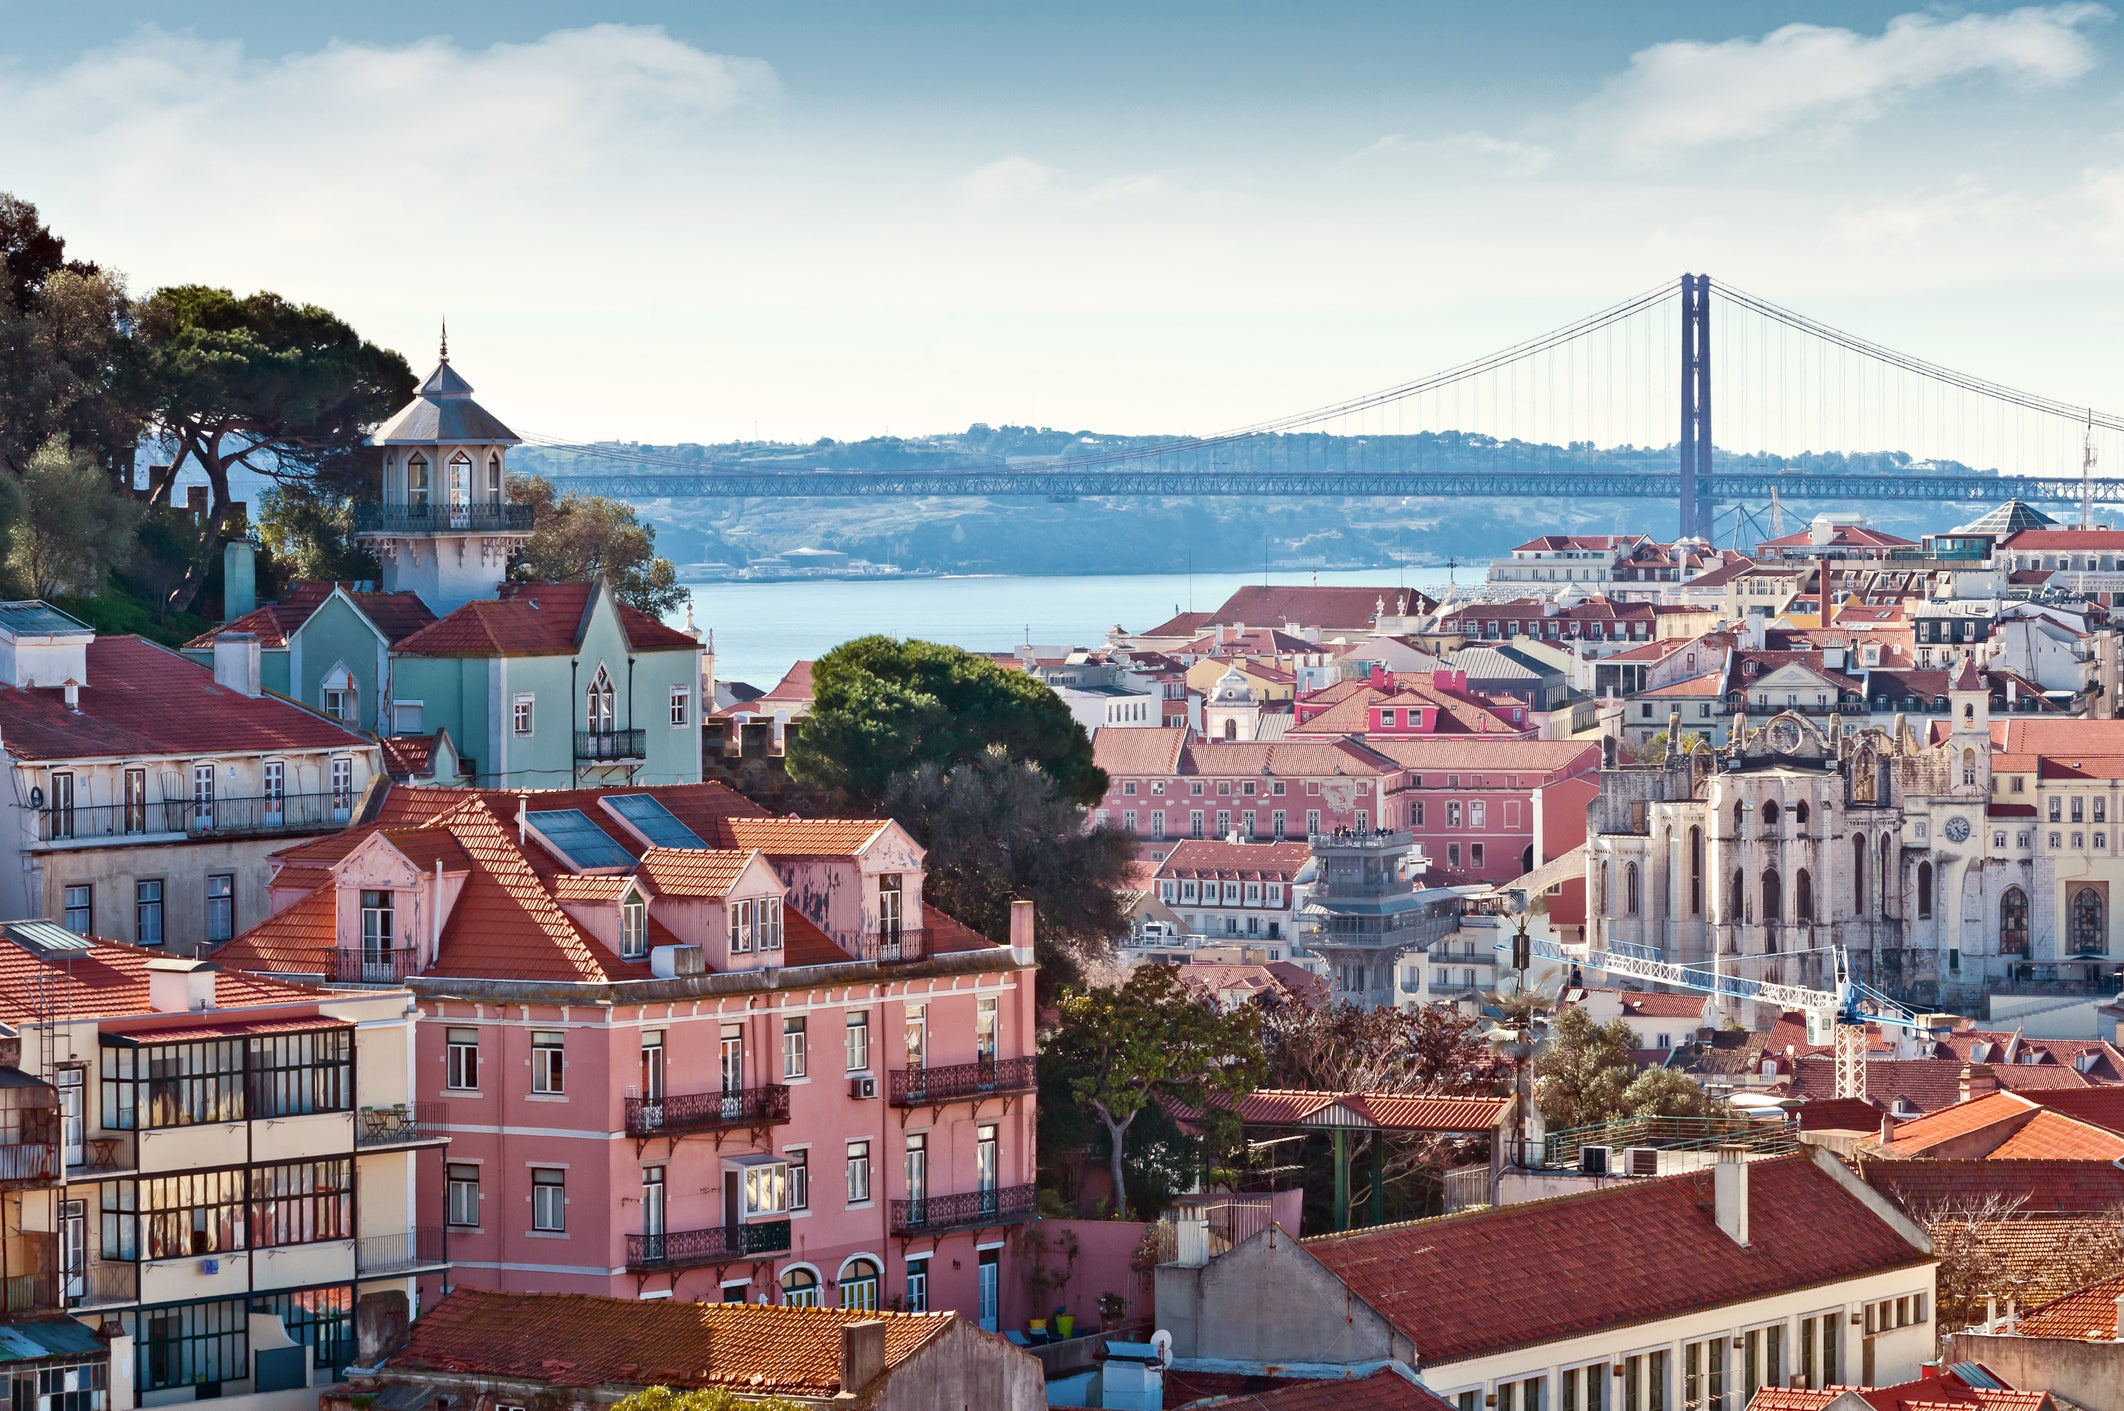 Traveling to Portugal: 7 things to know before you go - The Points Guy